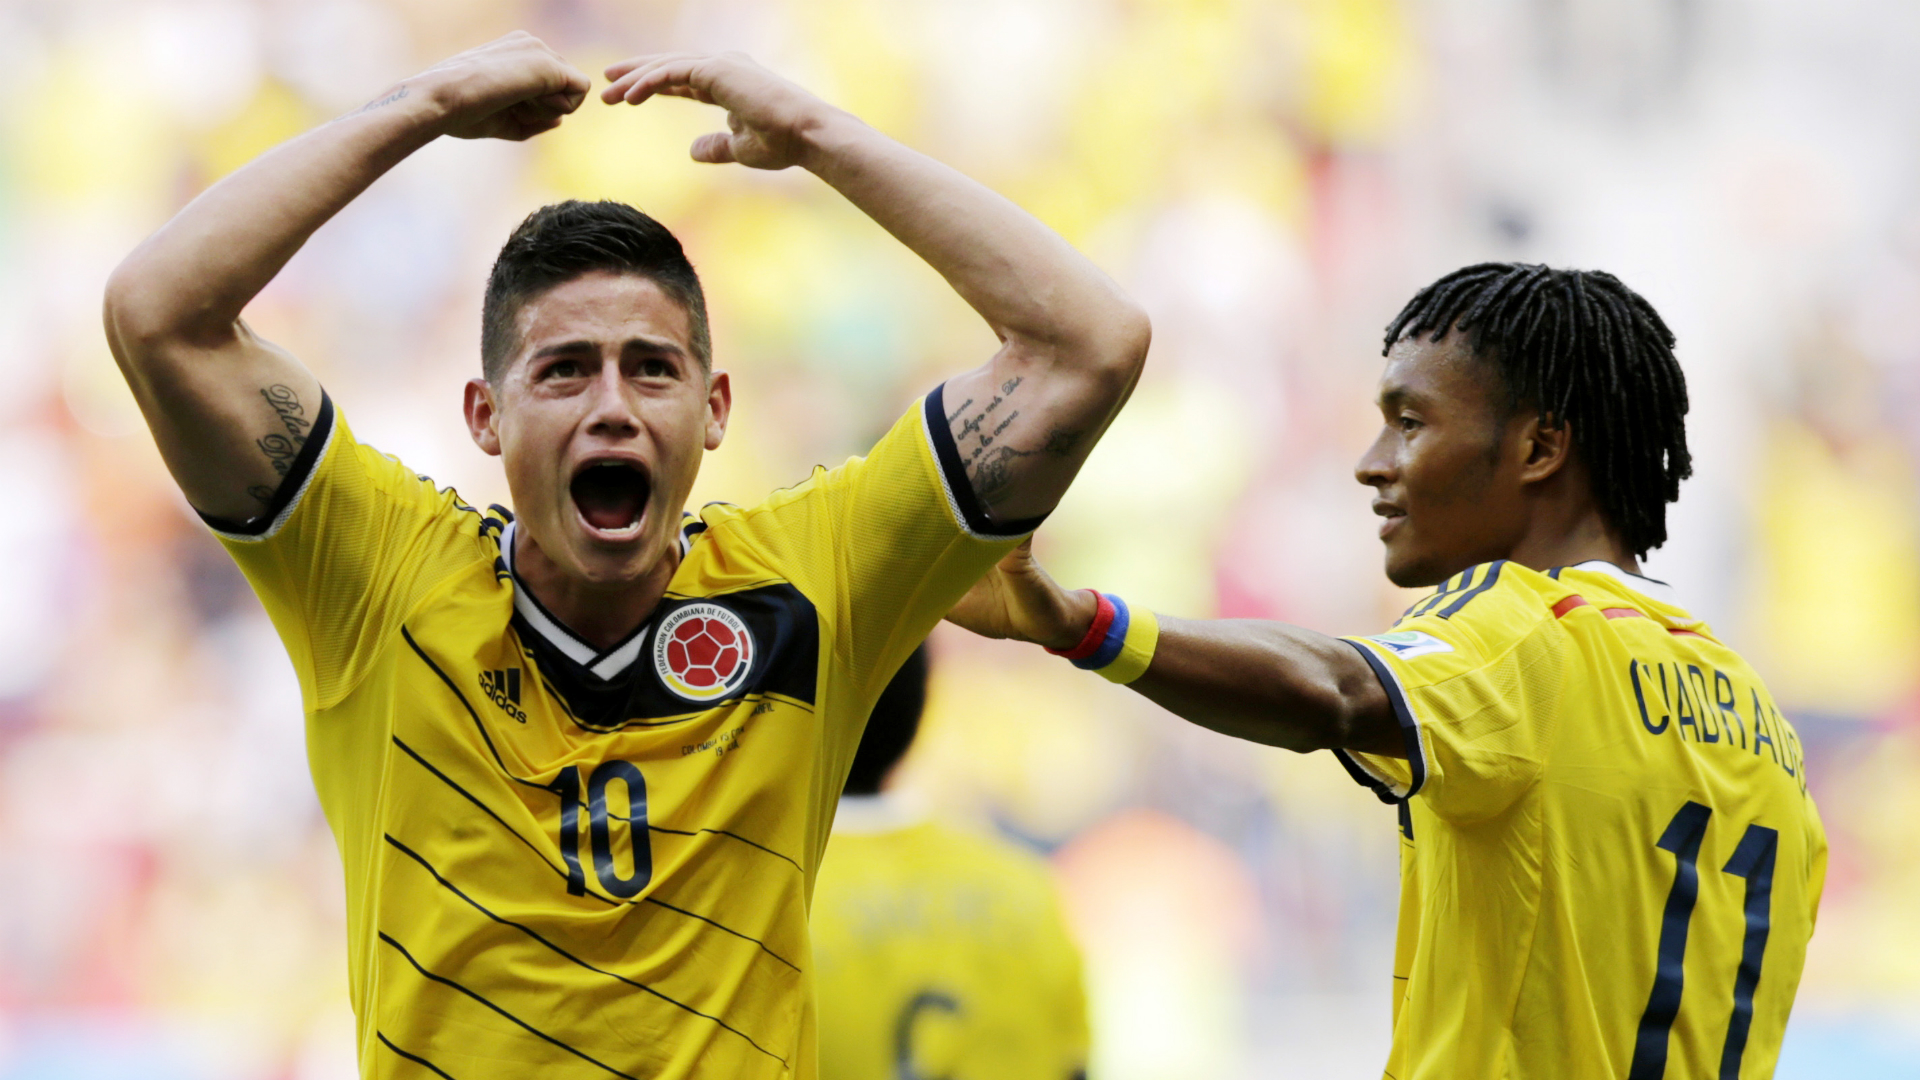 James-Rodriguez-062014-FTR-AP.jpg